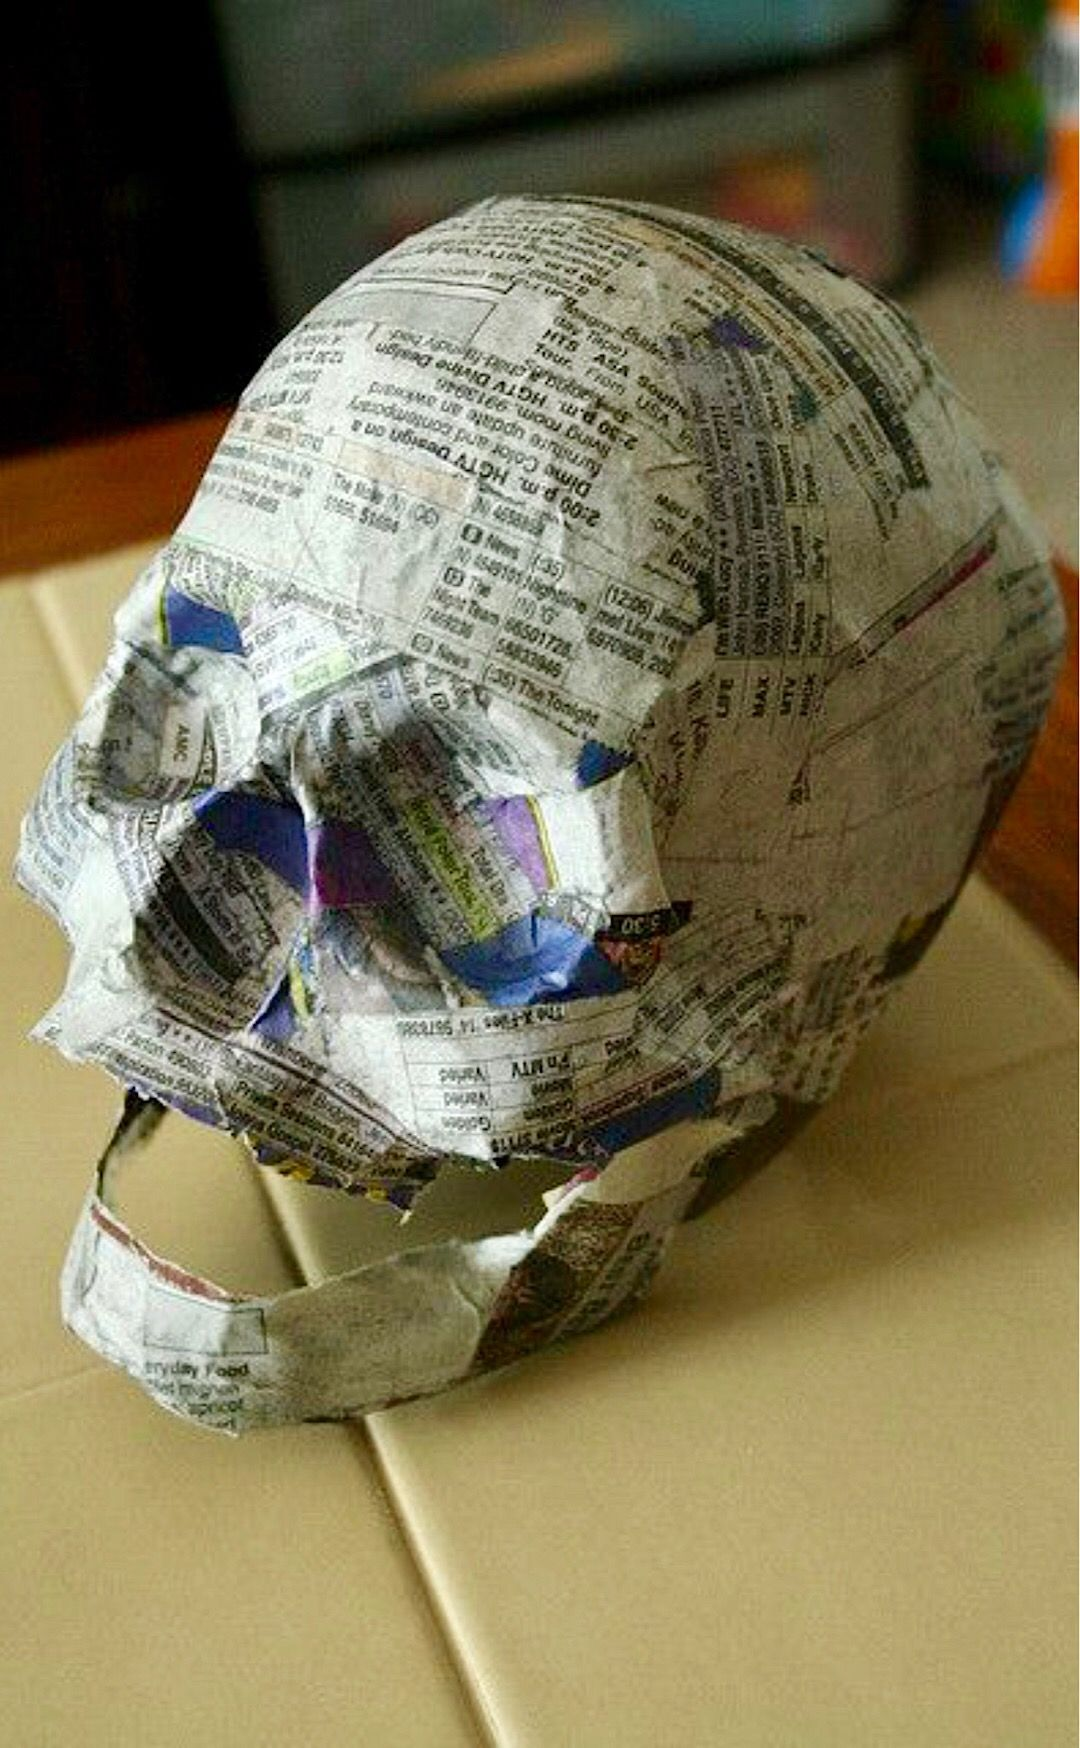 Out of all the new things I learned over the past year, making paper mache skulls was probably one of the best. I have to credit Spooky Blue for teaching me this through a tutorial on his website. Now that I have learned this I can make an unlimited amount of heads for zombies or […]